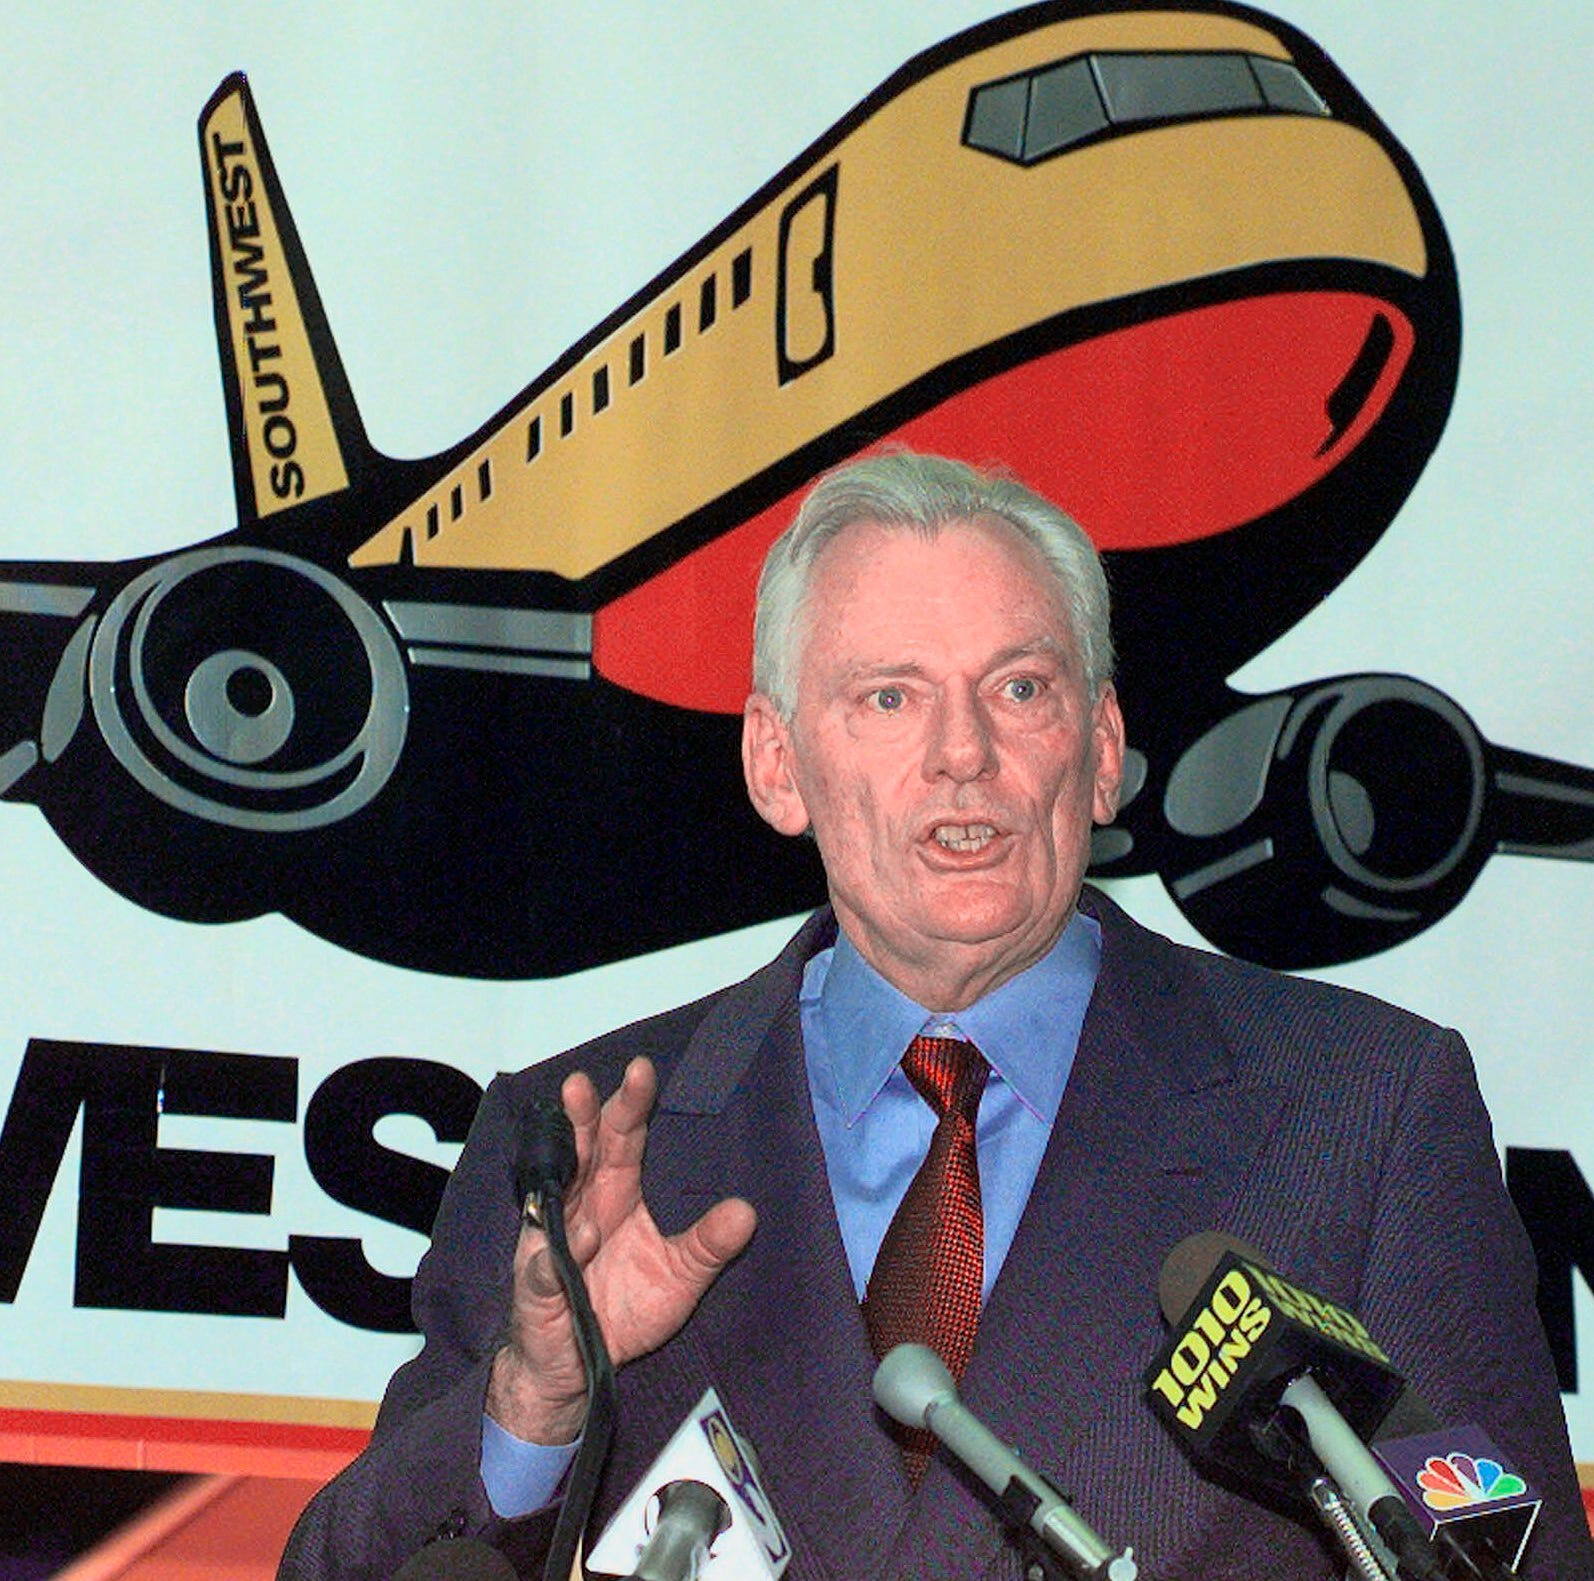 FILE - In this Dec. 9, 1998, file photo, Southwest Airlines President and CEO Herb Kelleher speaks at a news conference at MacArthur Airport in Islip, N.Y. Not many CEOs dress up as Elvis Presley, settle a business dispute with an arm-wrestling contest, or go on TV wearing a paper bag over their head. Southwest confirmed Kelleher died on Thursday, Jan. 3, 2019. He was 87. (AP Photo/Ed Betz, File) ORG XMIT: NYHK402